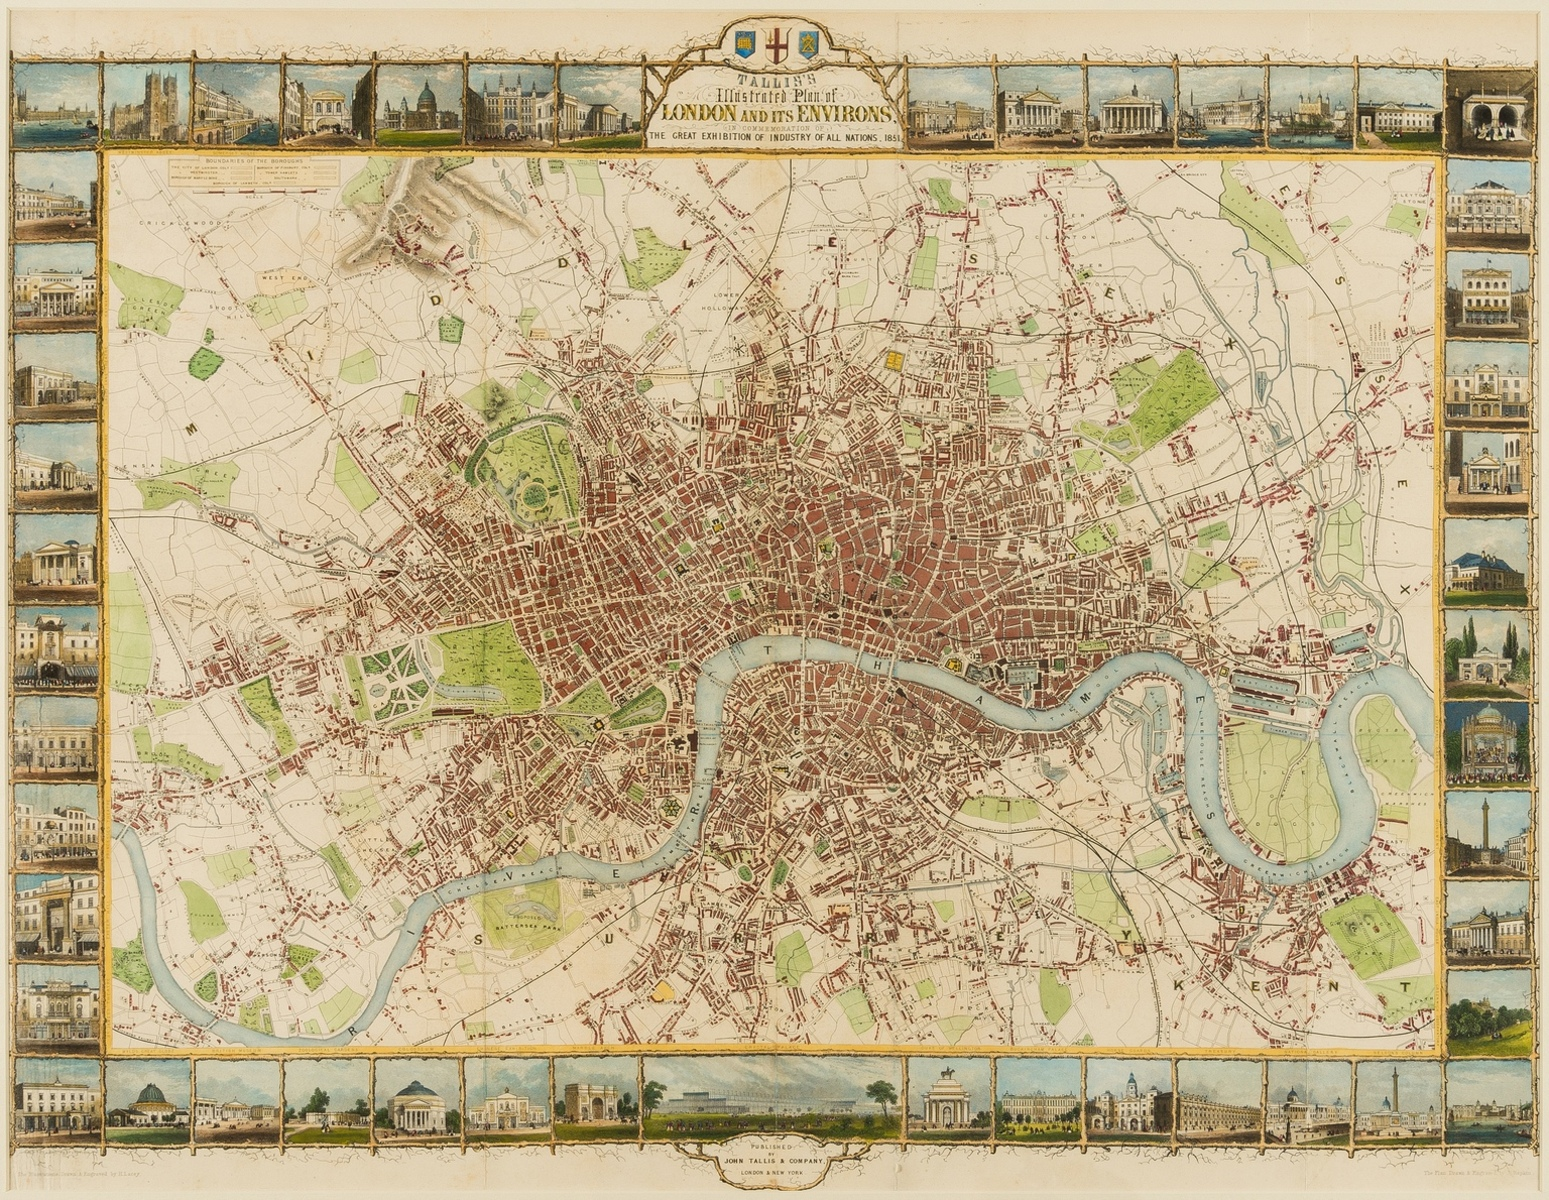 London.- Tallis (John) Tallis's Illustrated Plan of London and its Environs in commemoration of …